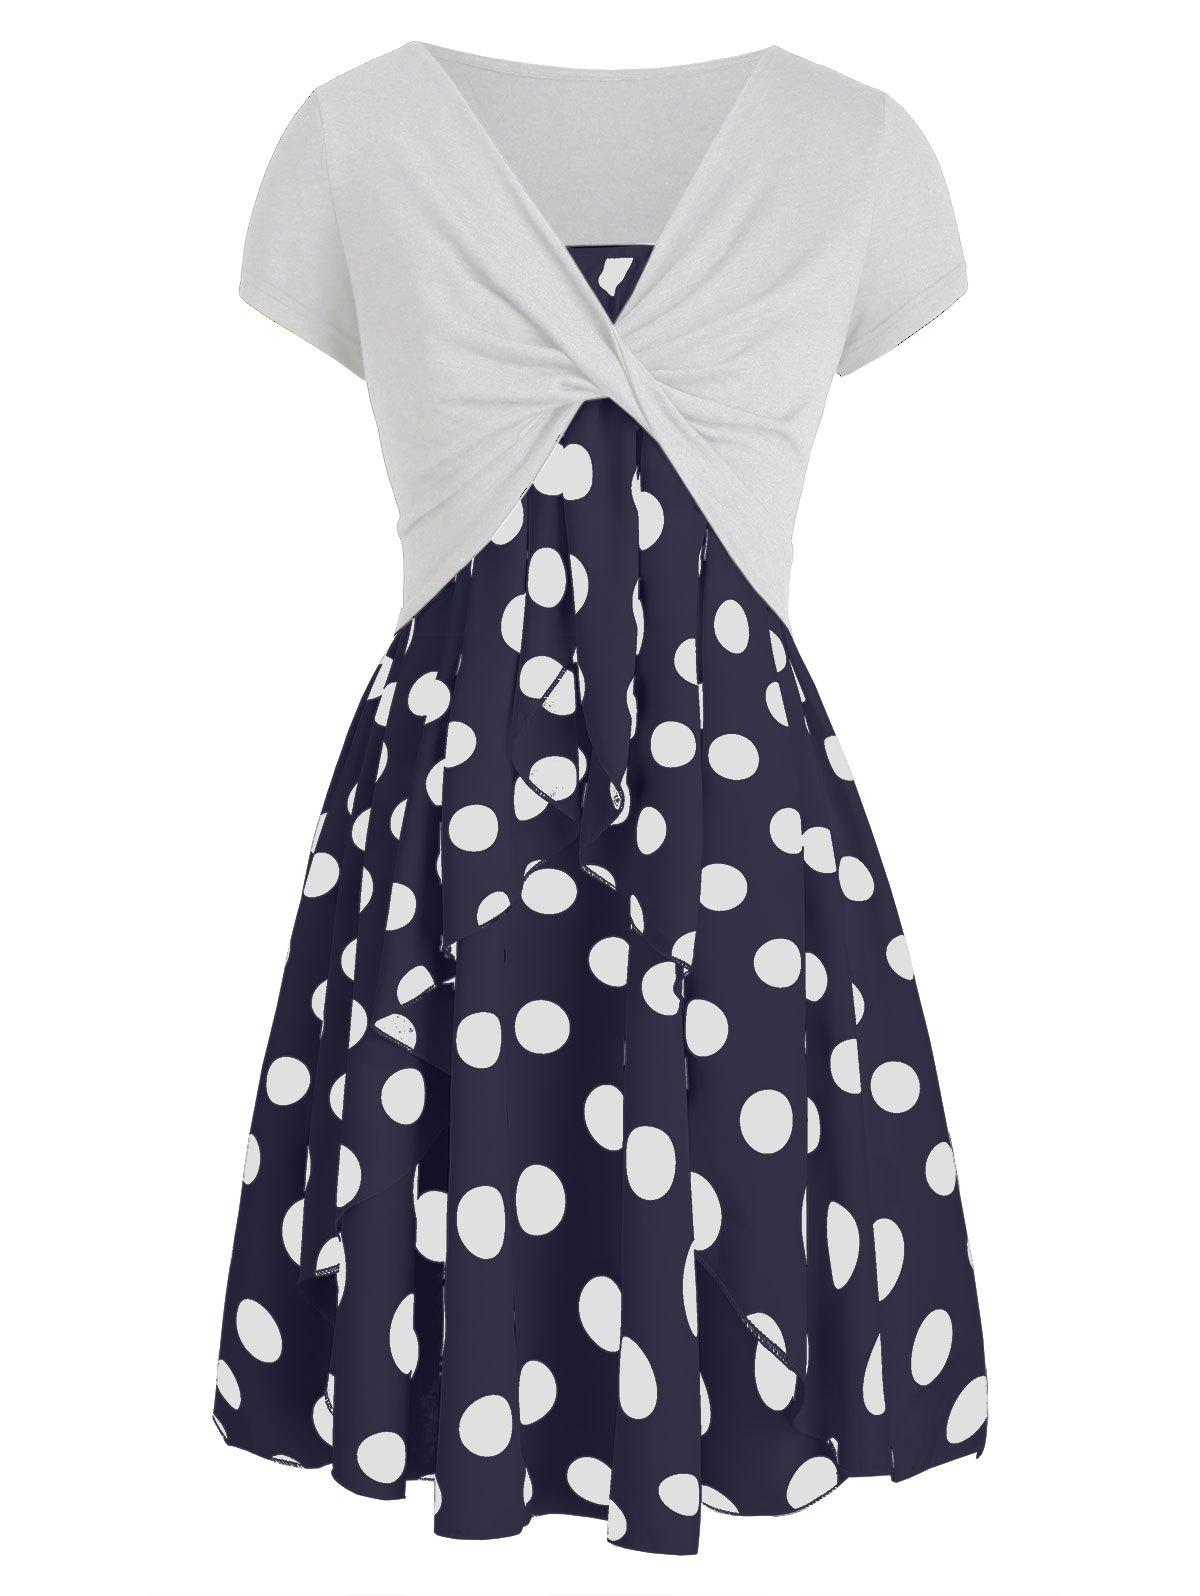 Affordable Cami Polka Dot Dress with Crop T-shirt